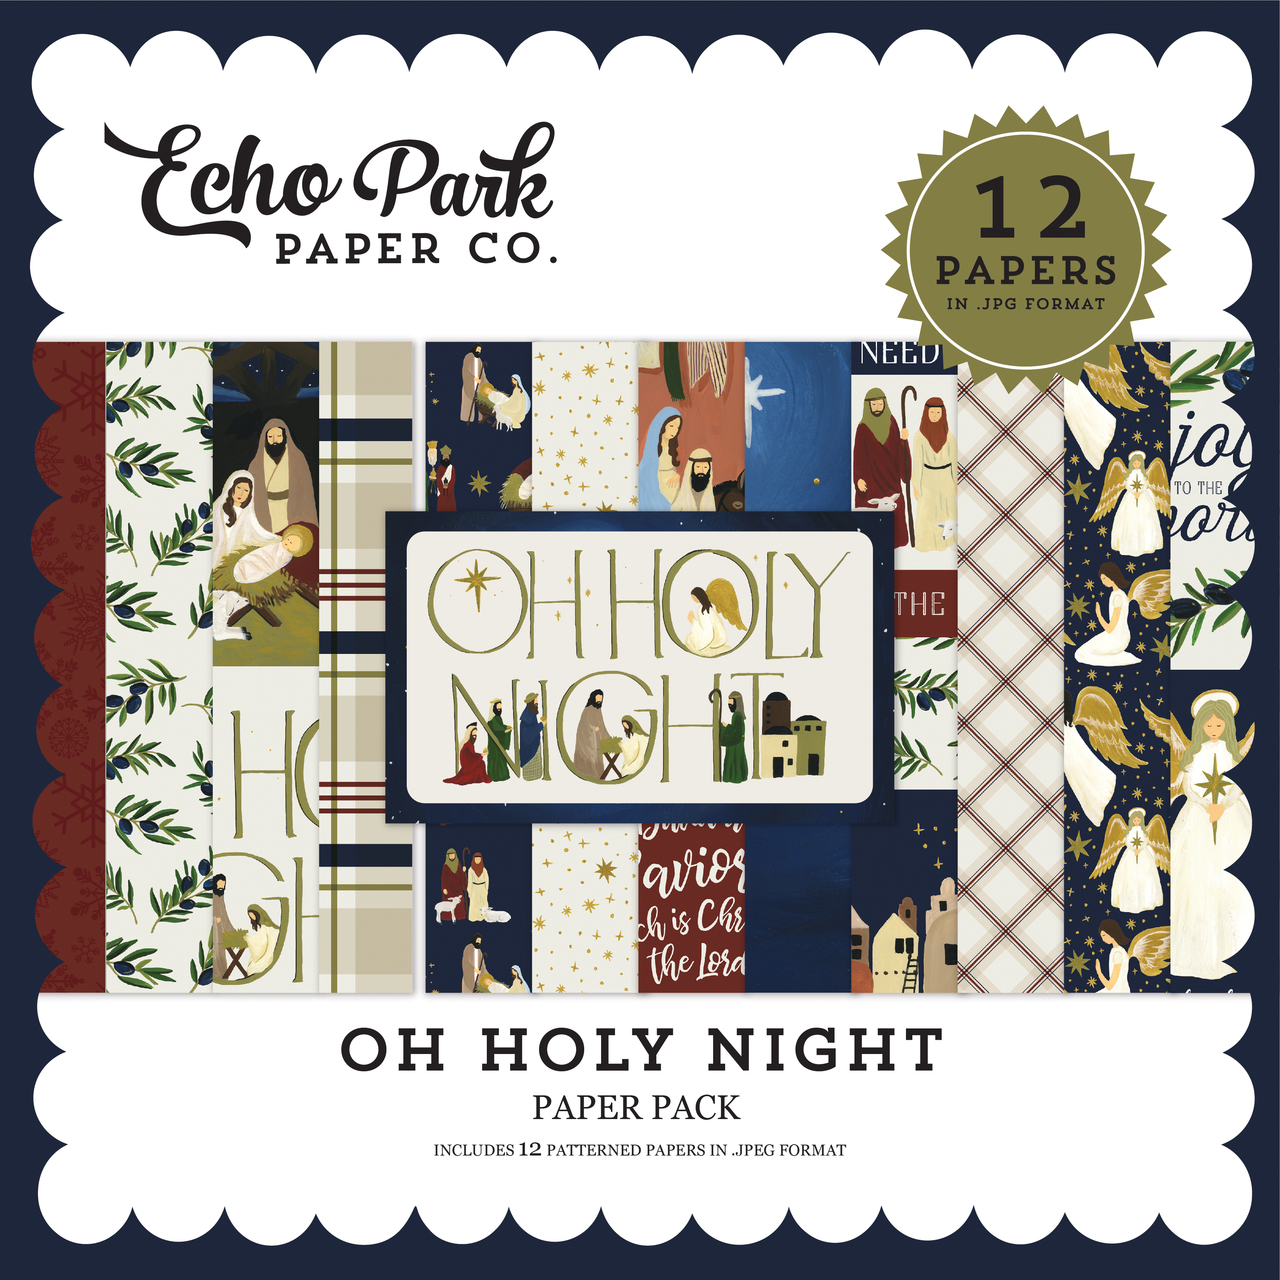 Oh Holy Night Paper Pack